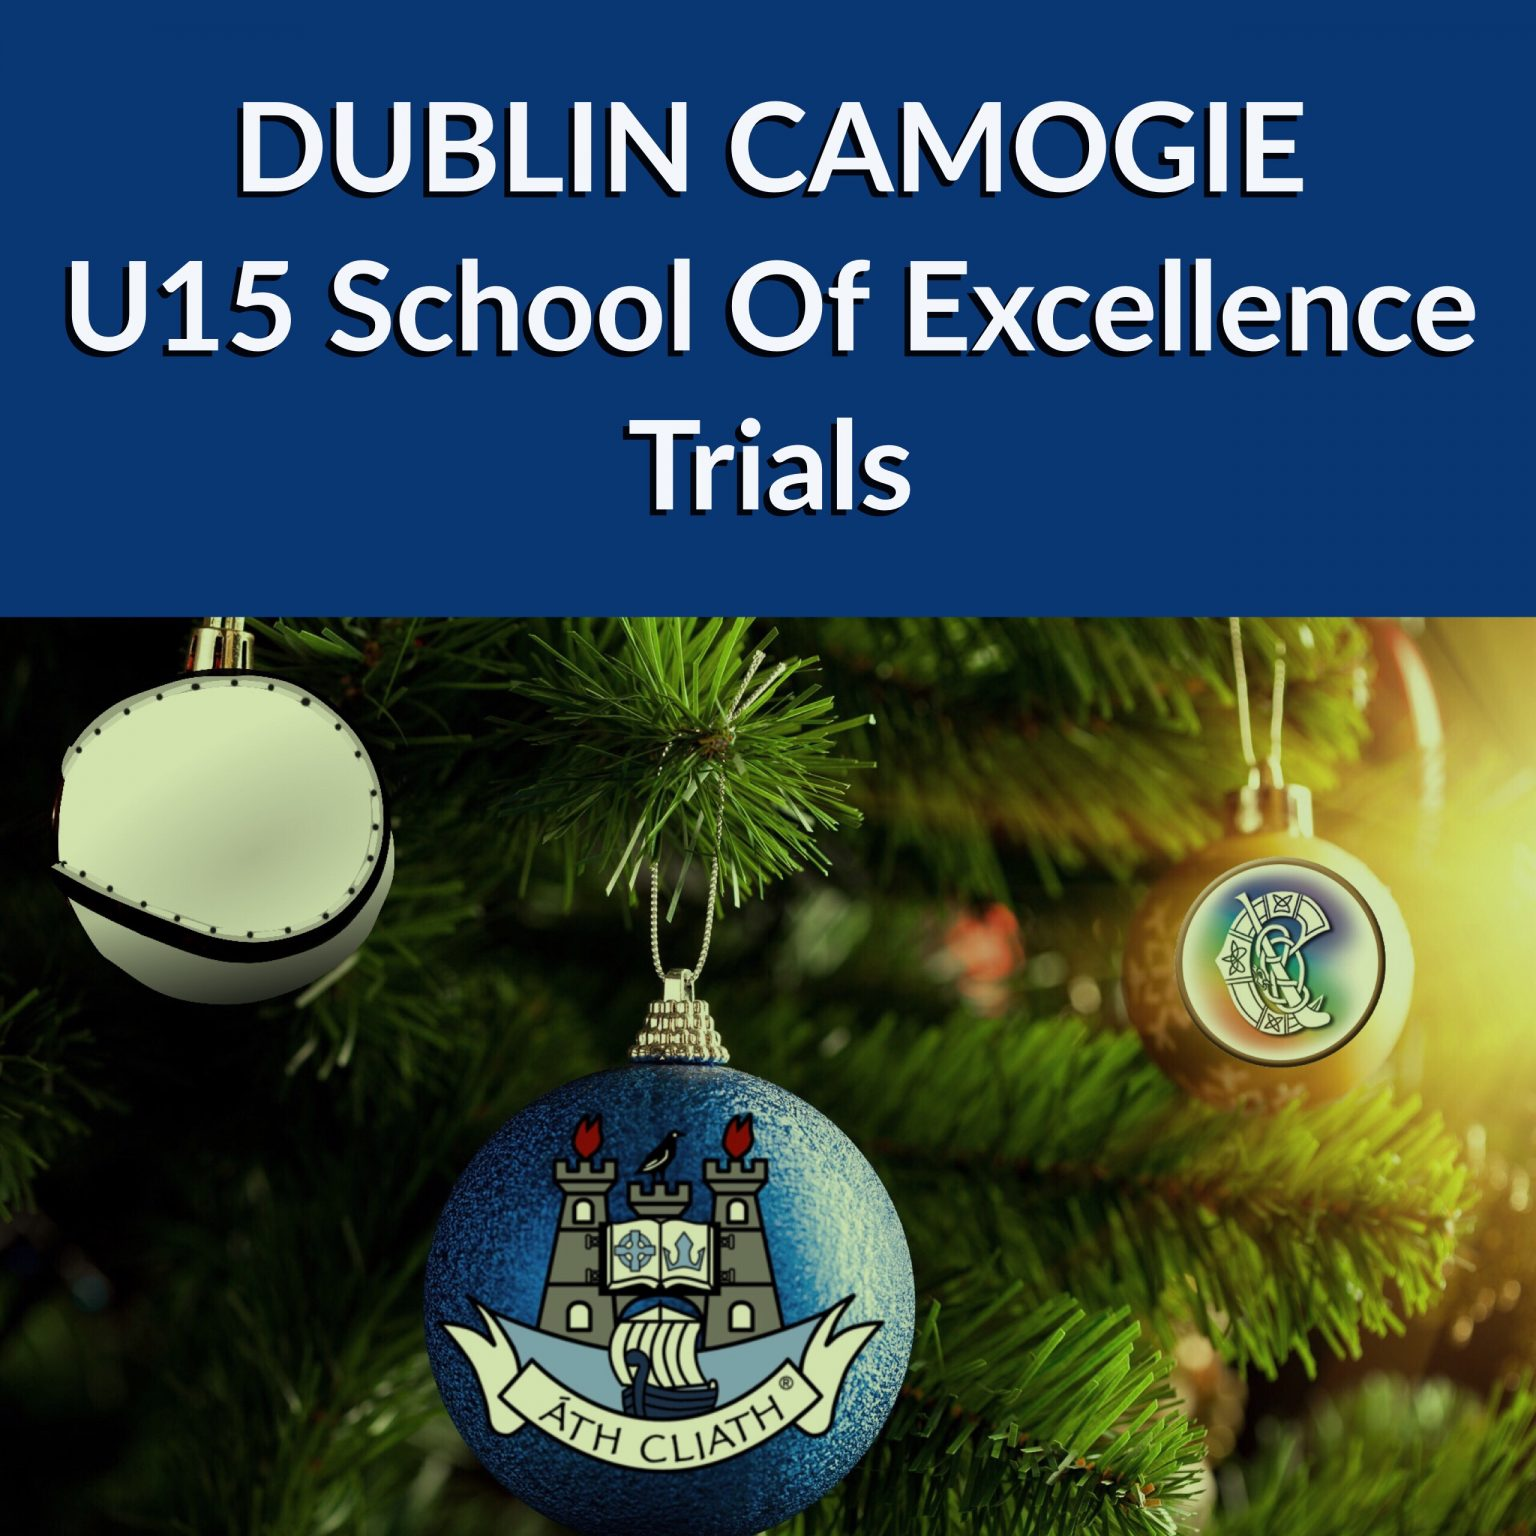 Image of Christmas tree with a Dublin GAA and Camogie baubles